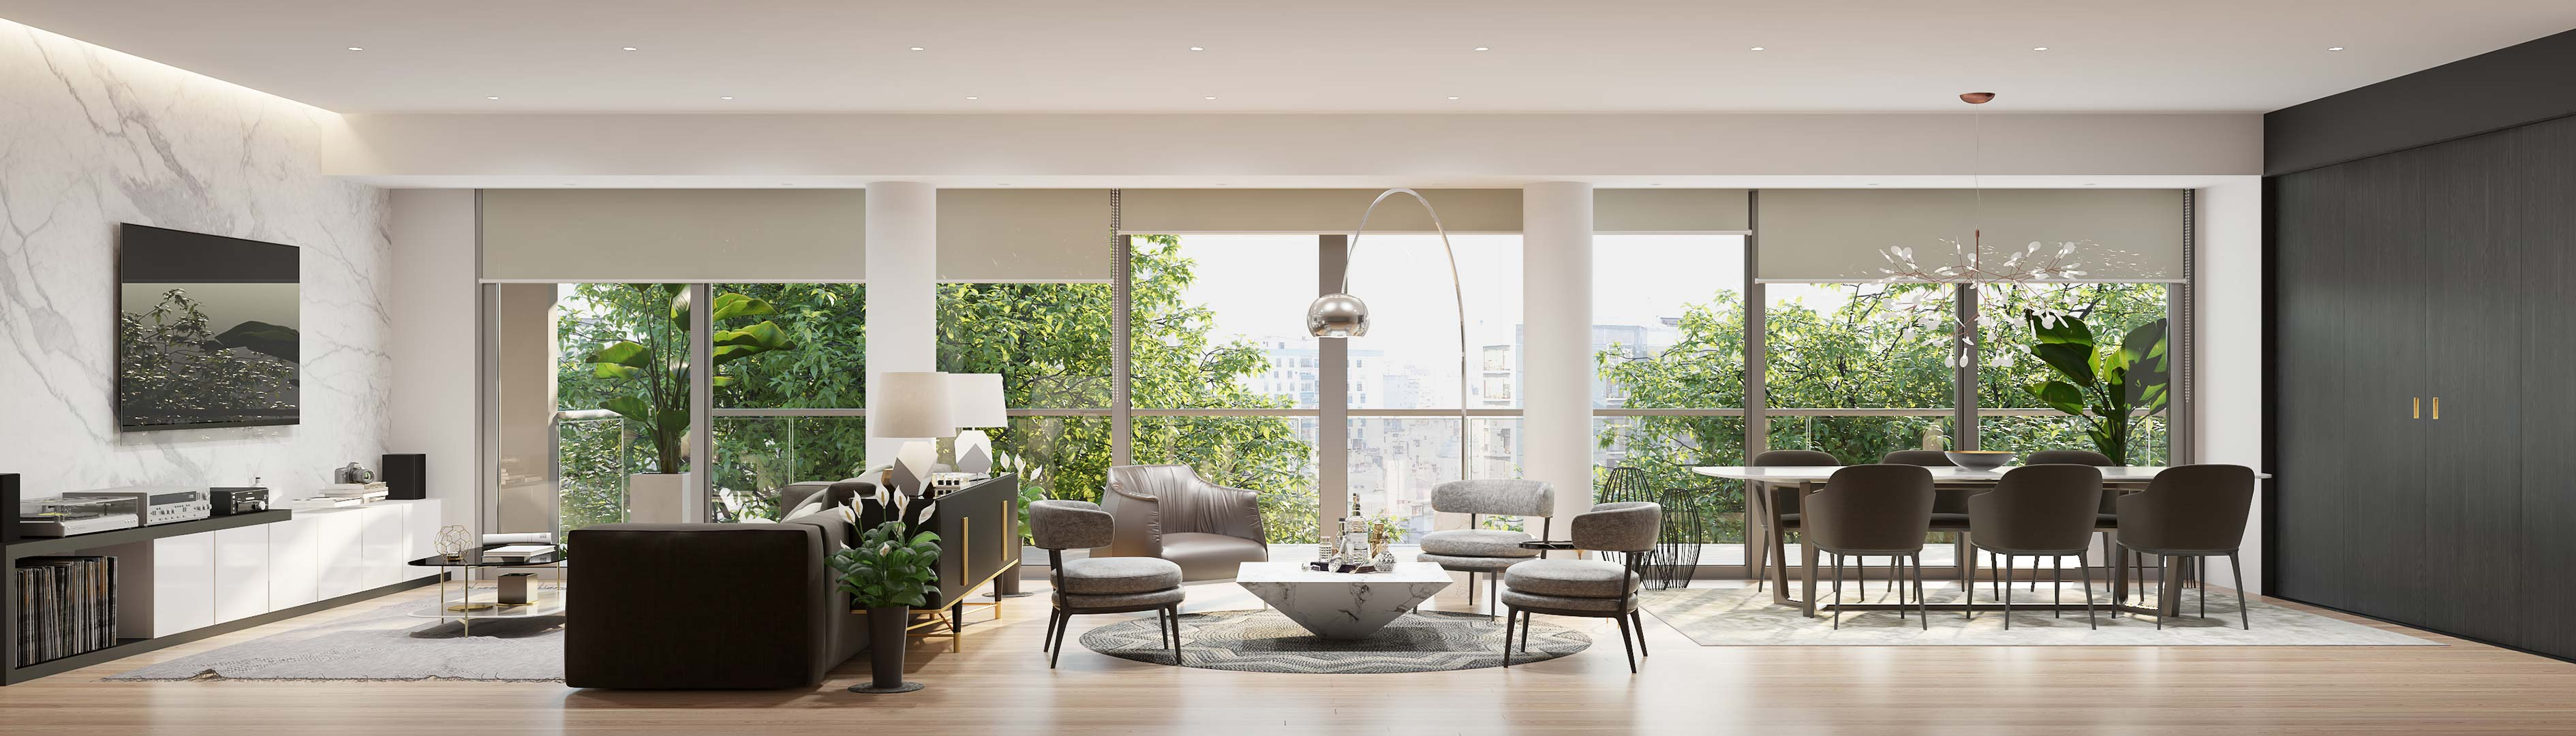 Apartment living room - 3D rendering